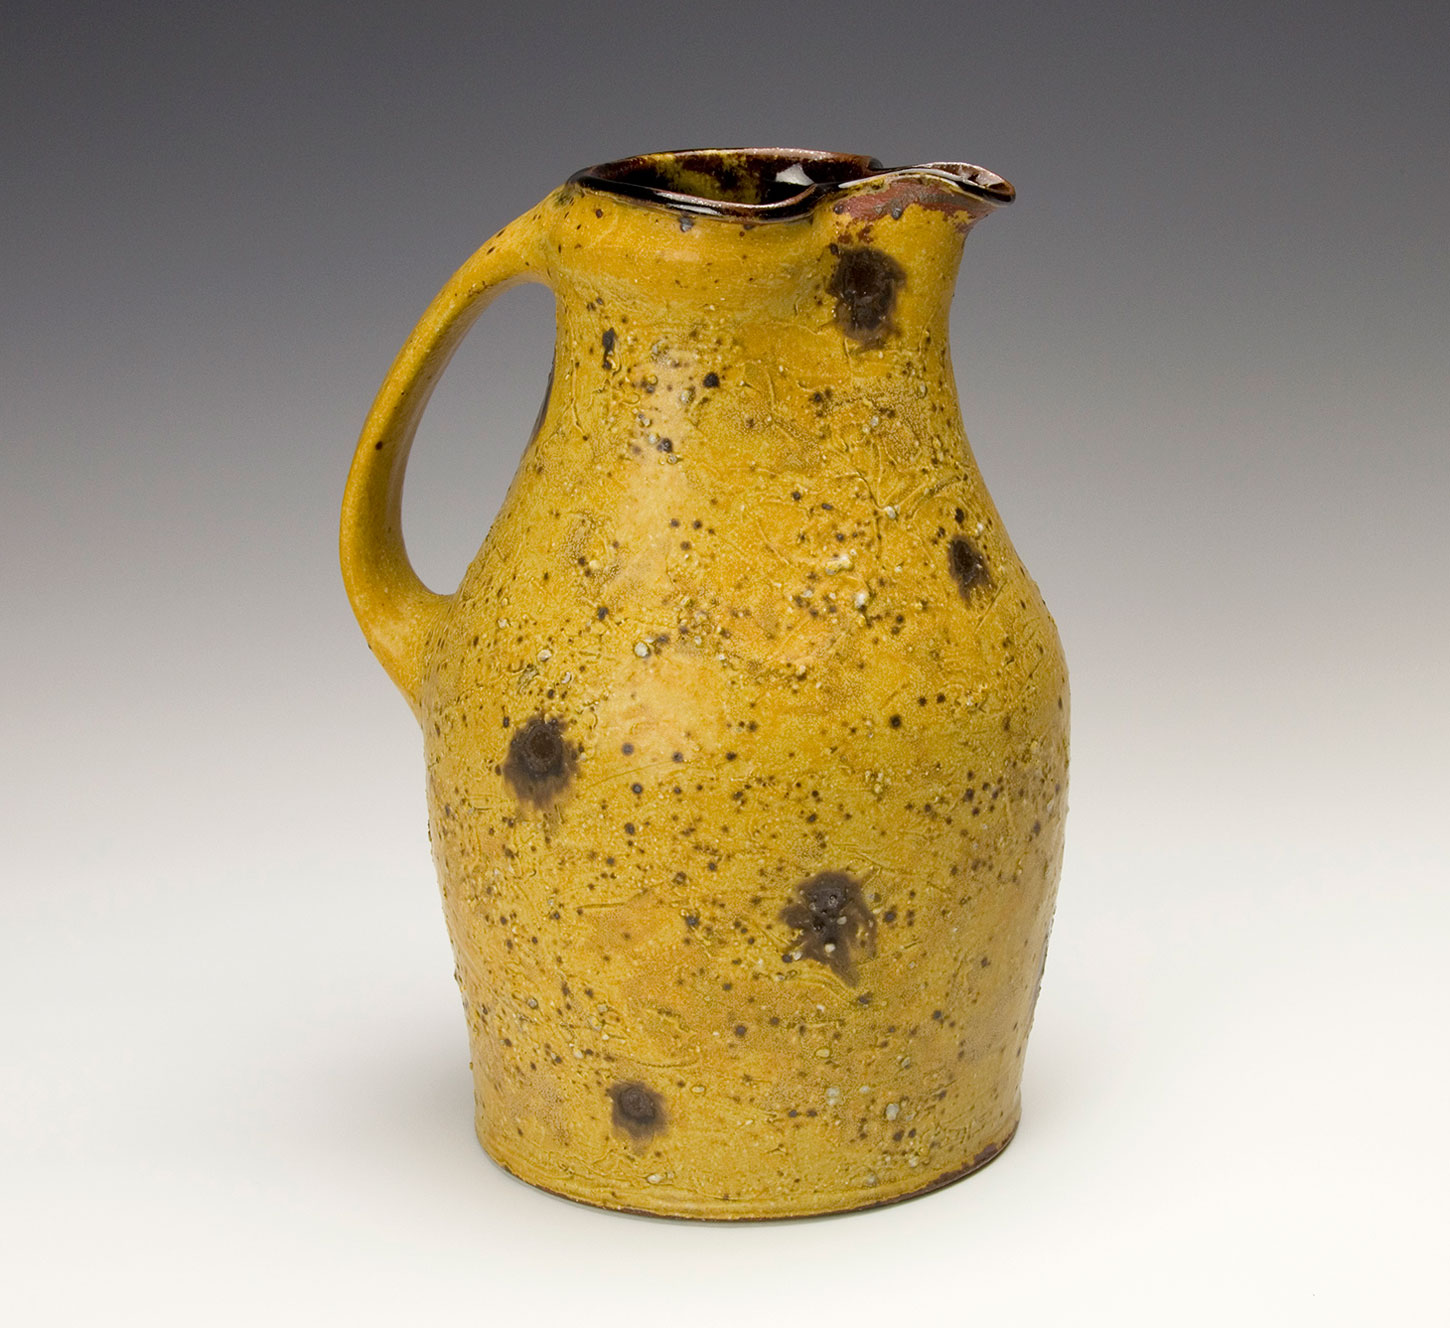 Wild-Clay-Pitcher-Bruce-Gholson-Bulldog-Pottery.jpg